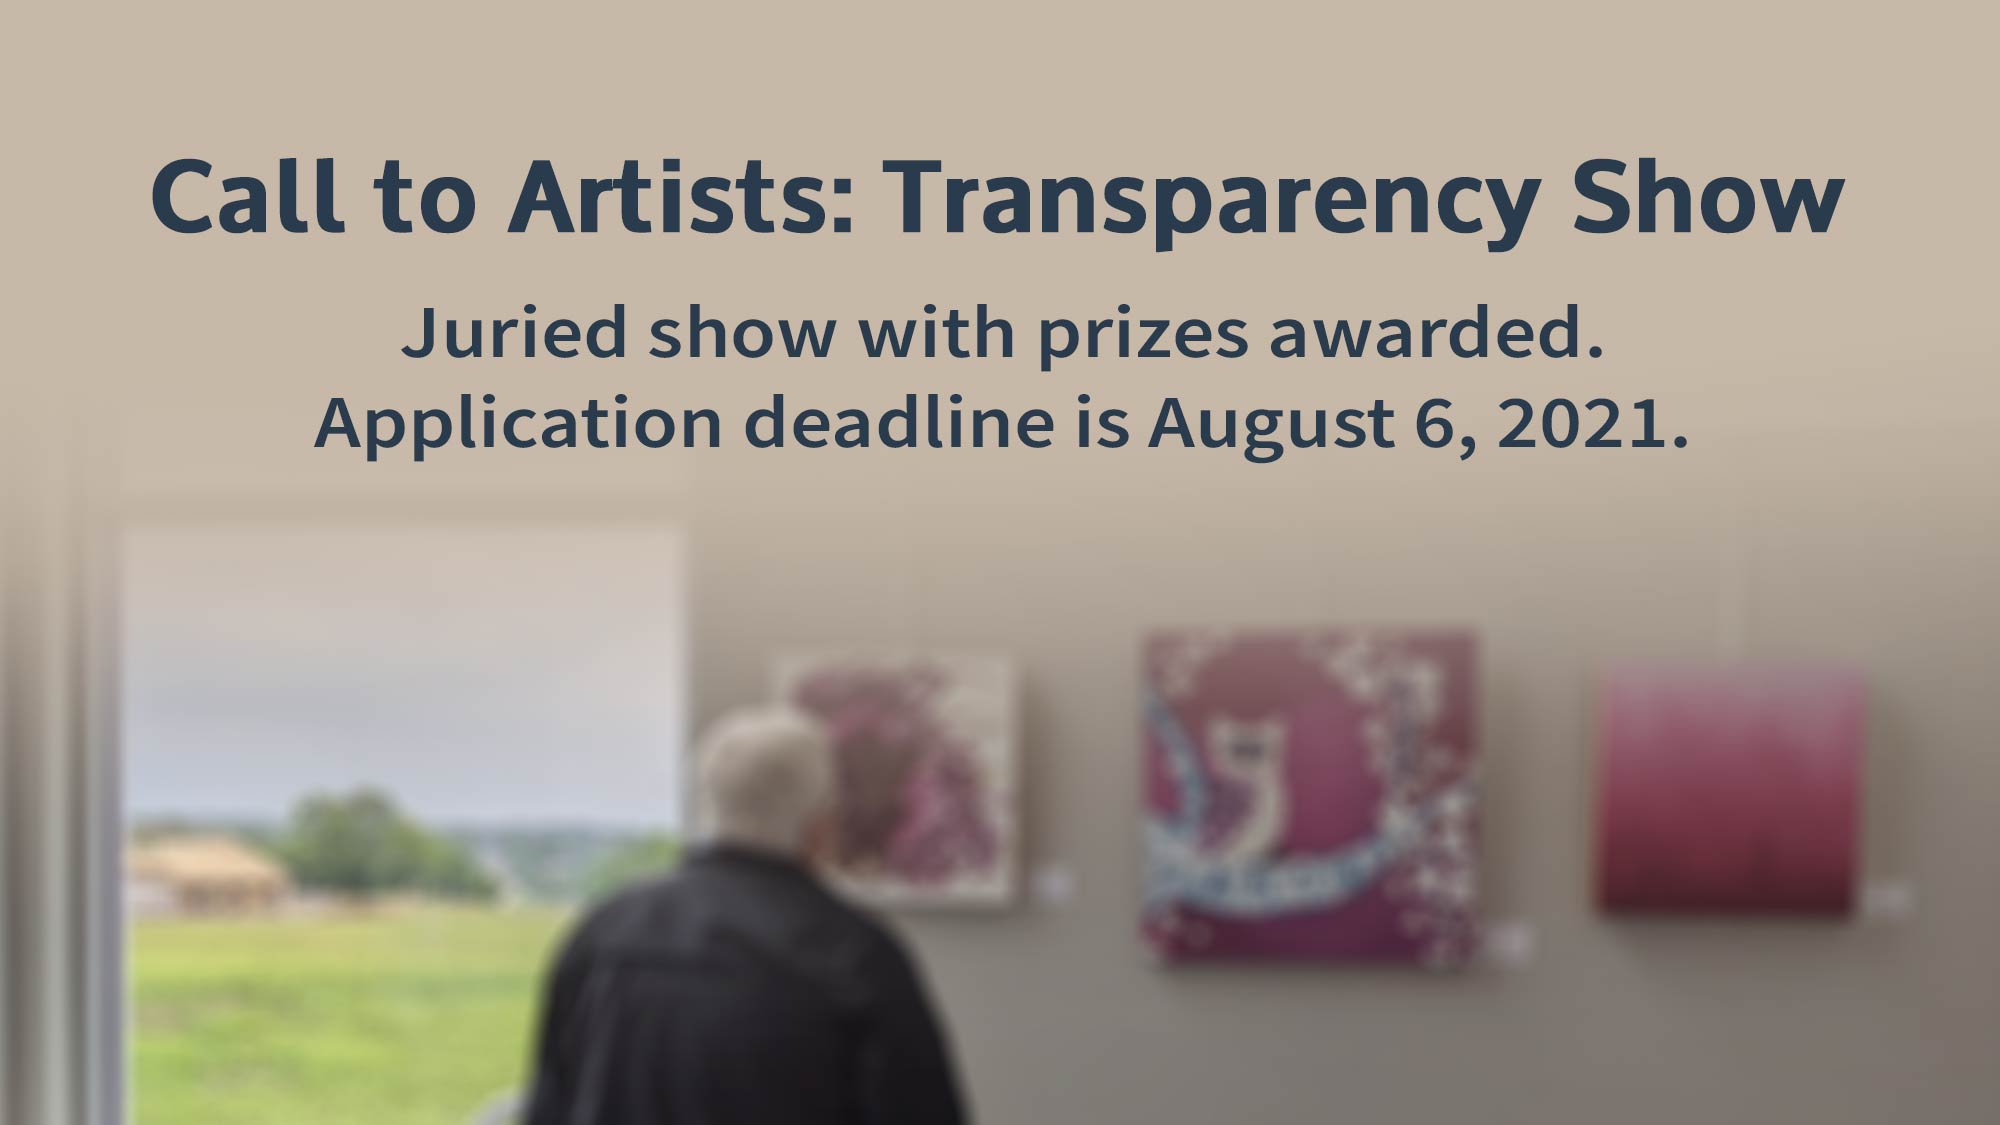 Transparency Juried Art Show in Columbia Mo